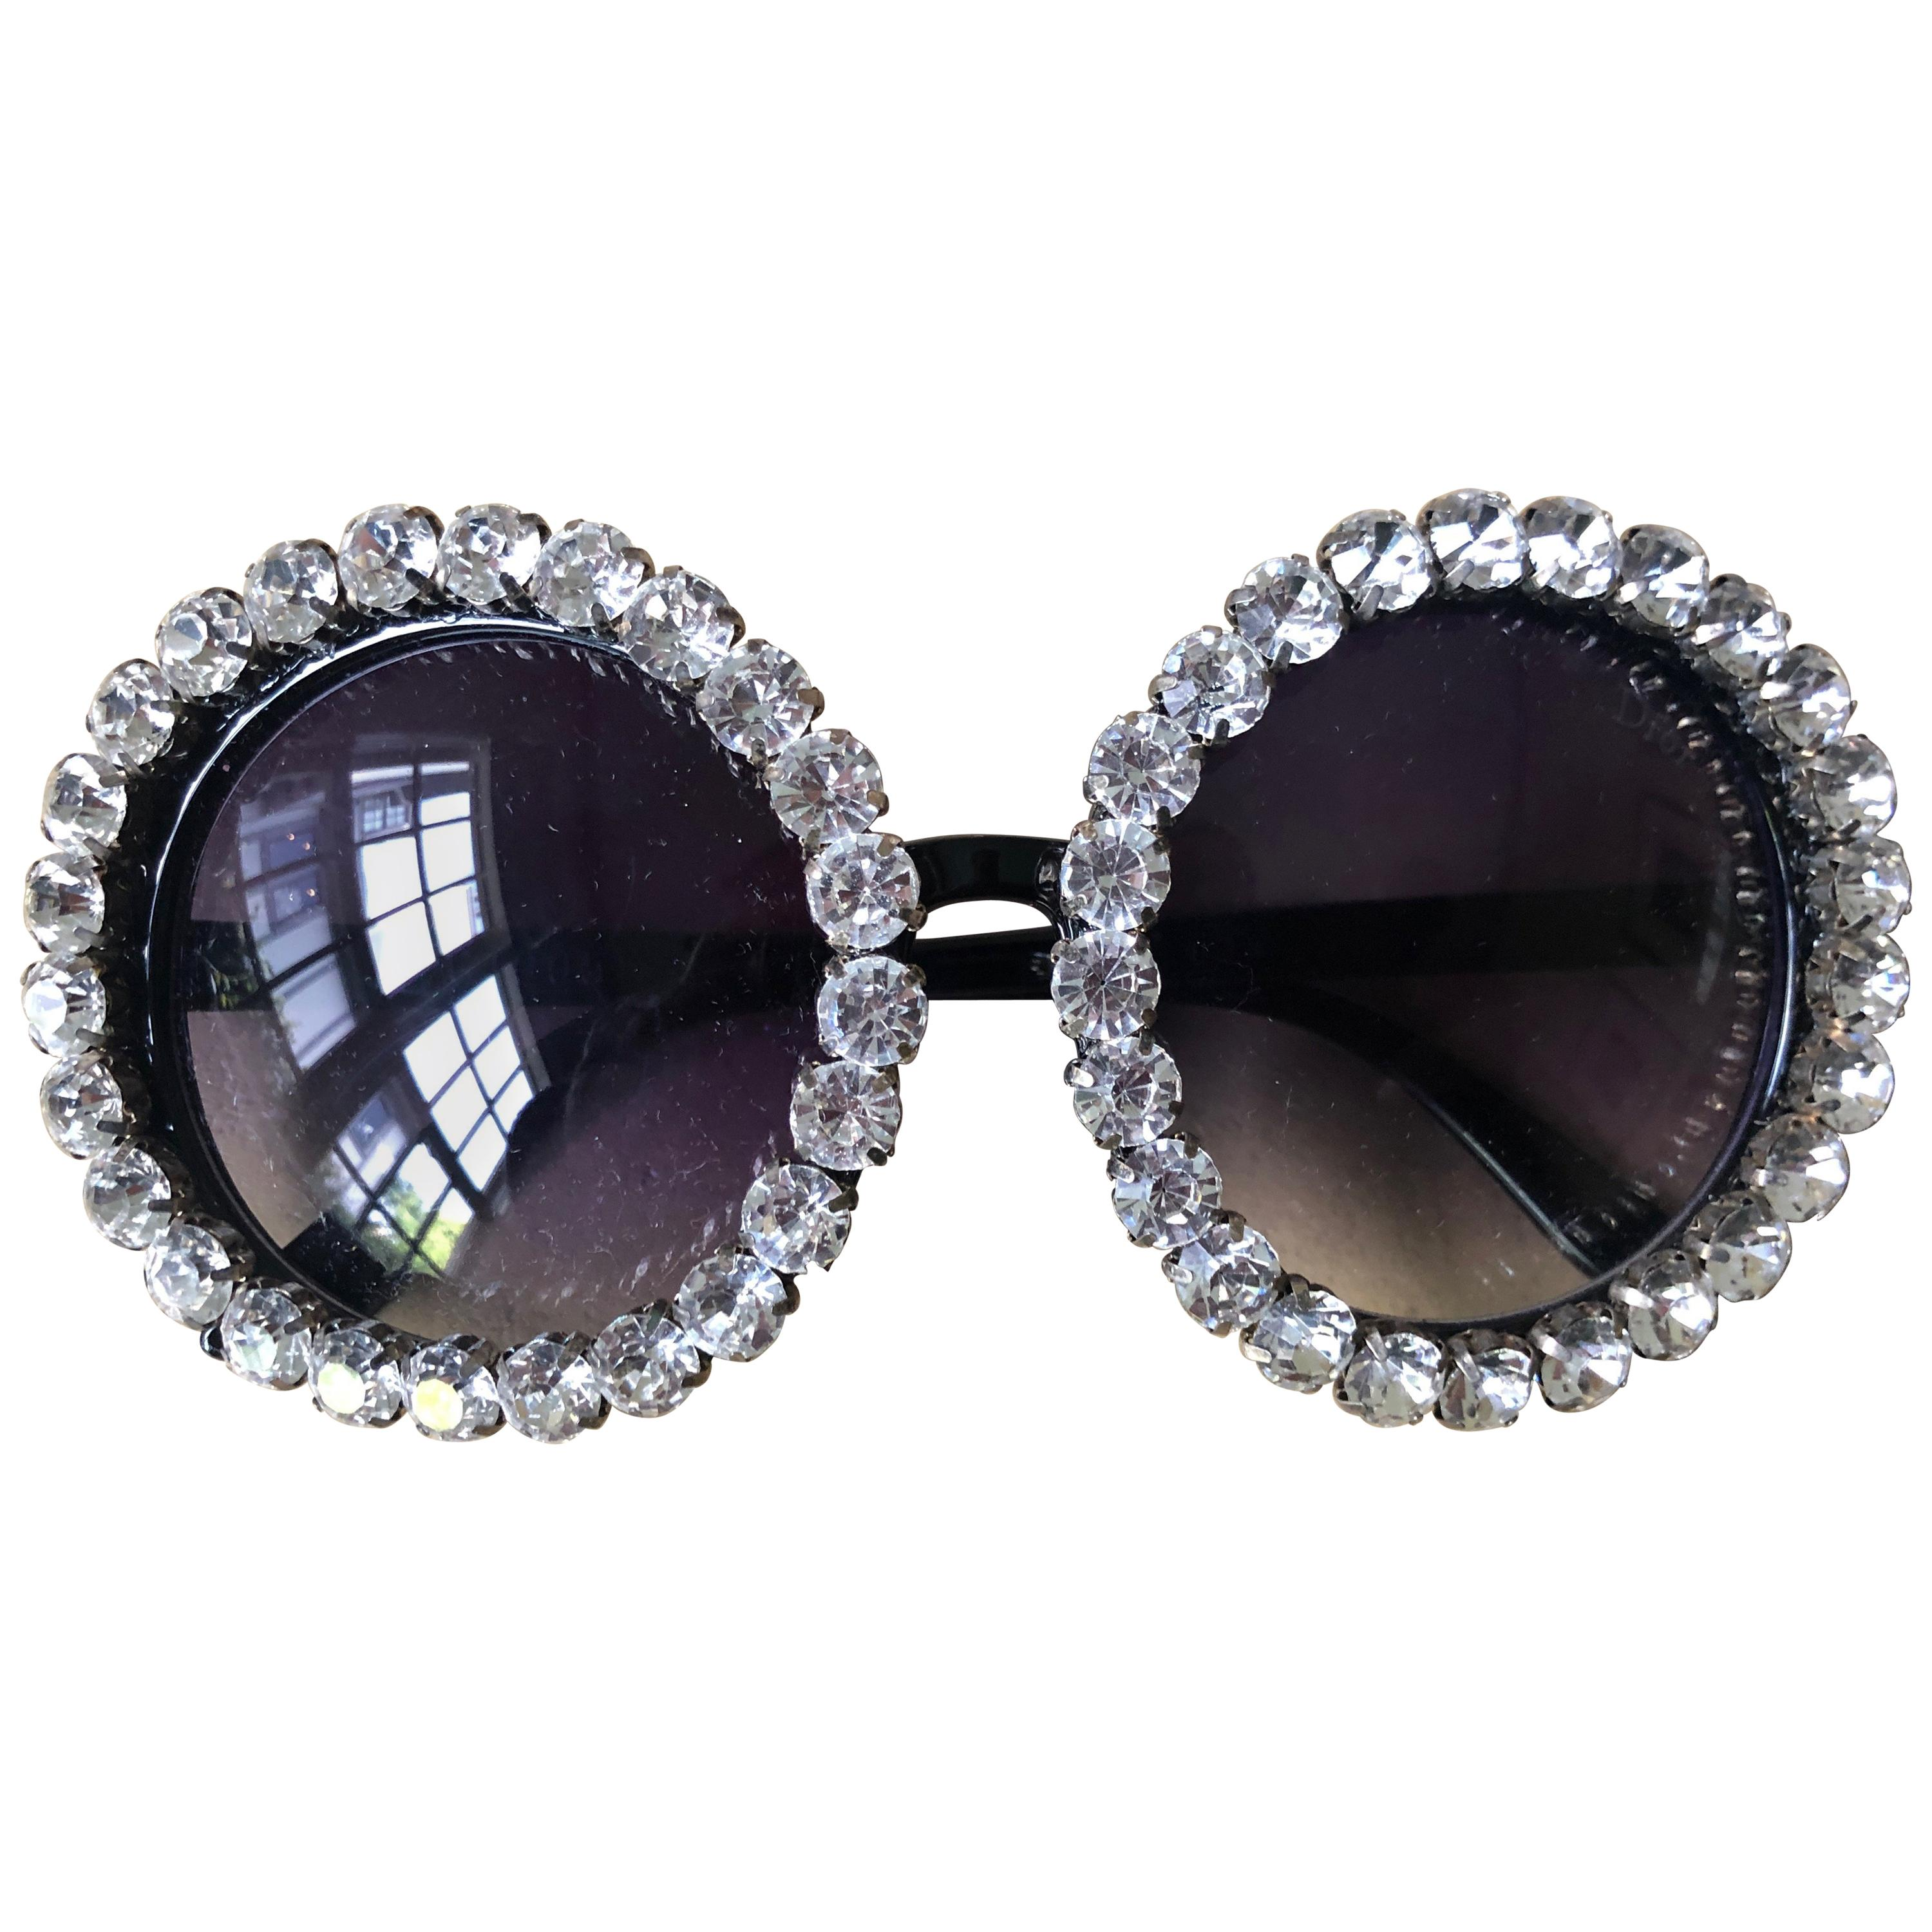 3311fad6f7e8 Christian Dior Vintage Oversize Swarovski Crystal Round Sunglasses in Case  For Sale at 1stdibs